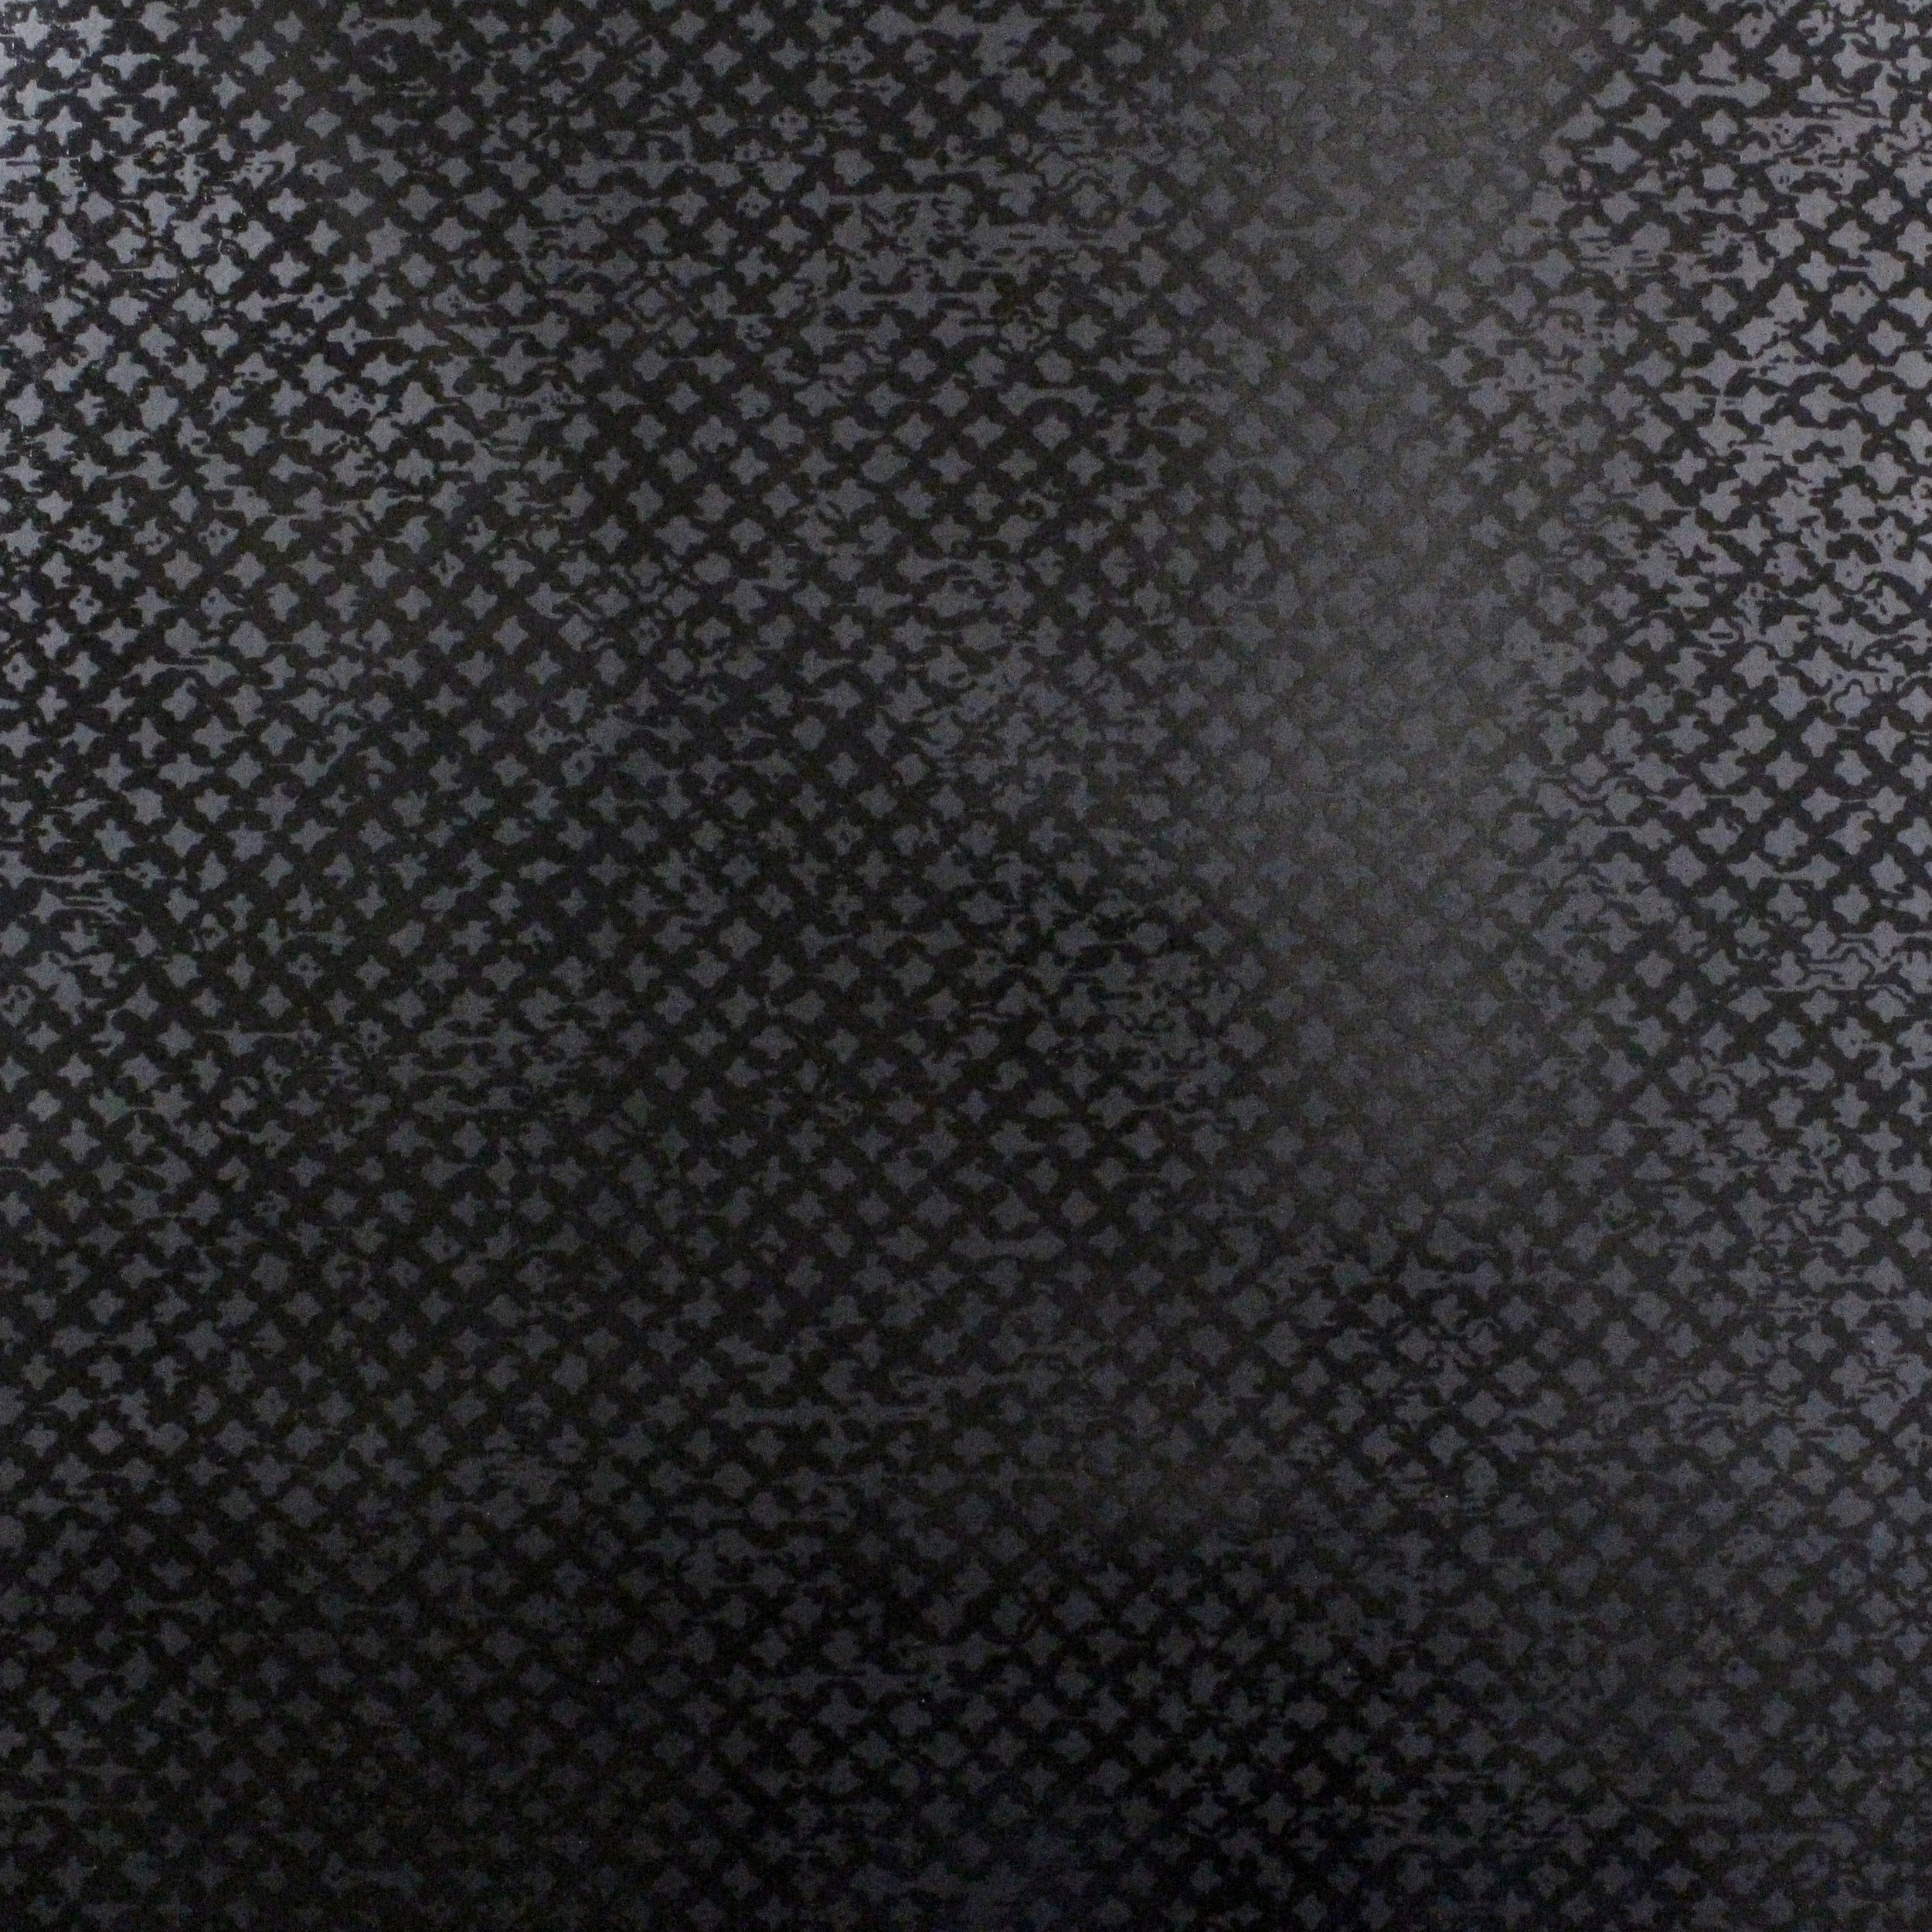 Above: subtle texture achieved by printing gloss black ink onto matt black paper (Design: Treillage from the Chic wallpaper collection - SPW-TR05)